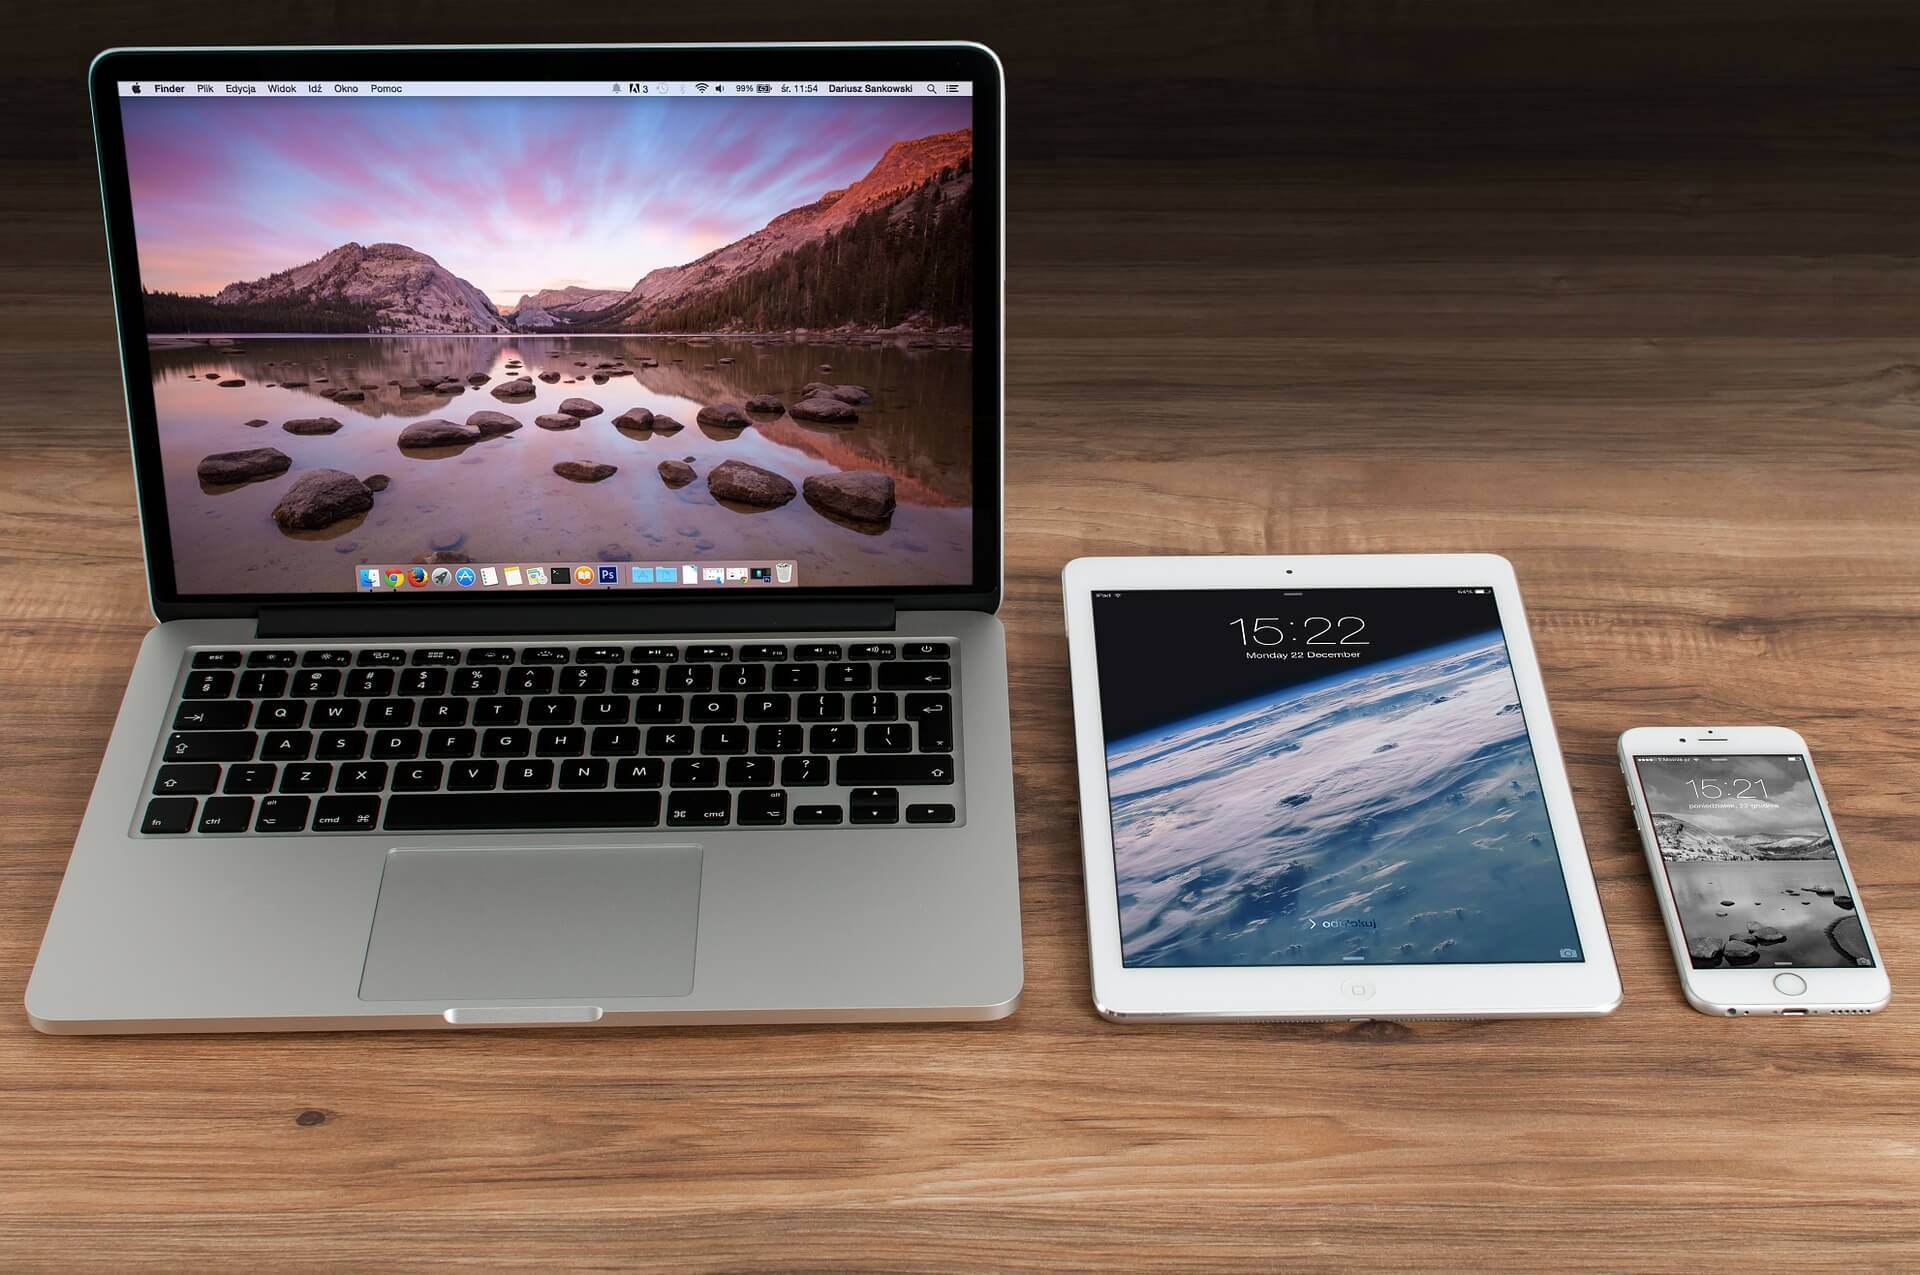 apple watch macbook spring forward 2015 0775 In Gold und mit Force Touch: Neues 12 Zoll Macbook